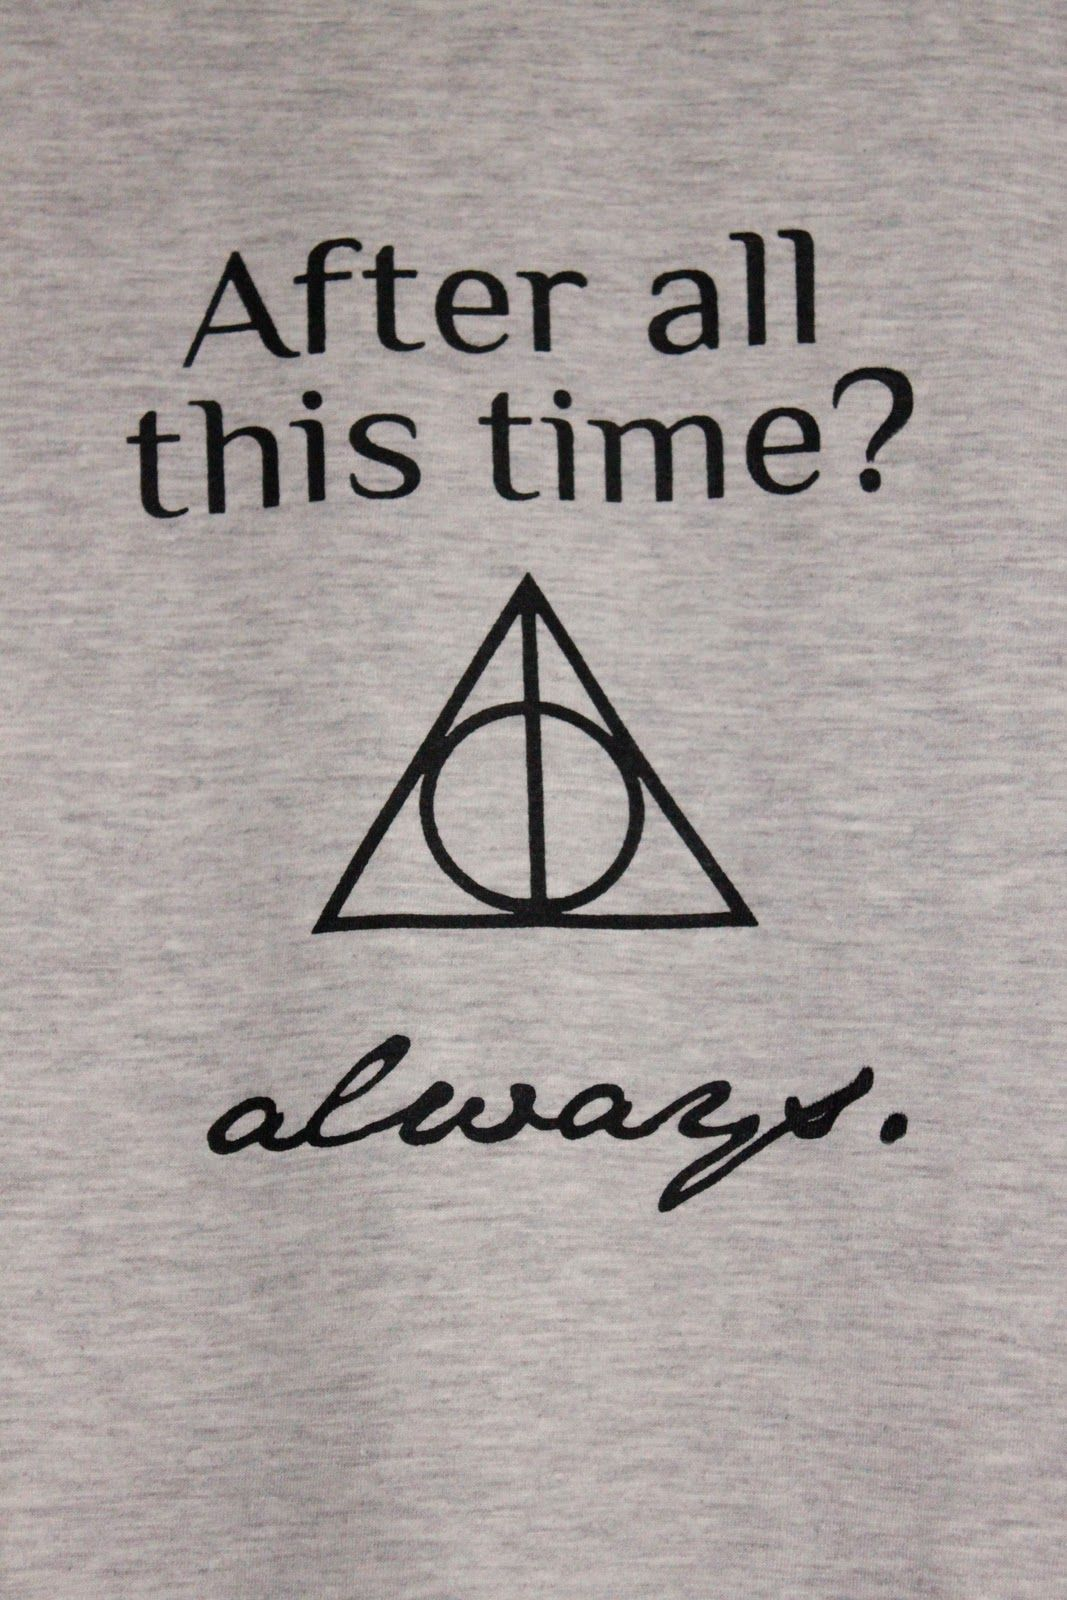 Clean Lines And Sharp Edges Hello There Harry Potter Quotes Wallpaper Harry Potter Quotes Potter